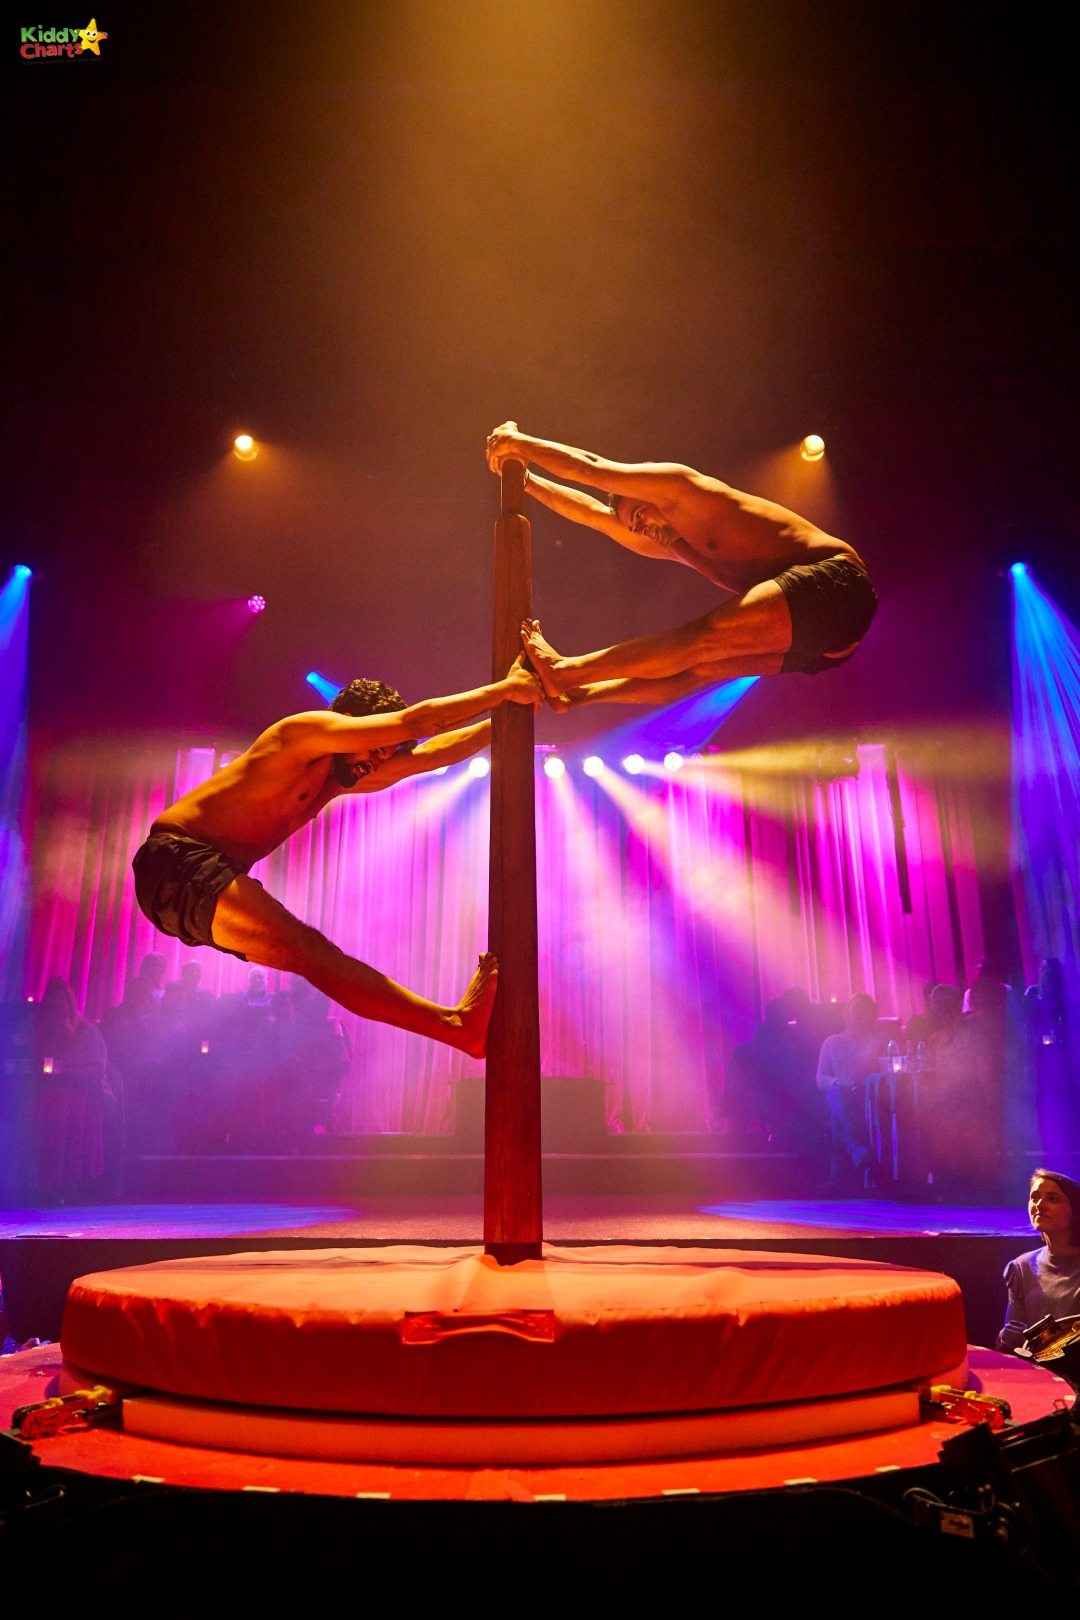 Some of the acrobats at Petite Soiree in London are just breath-taking.